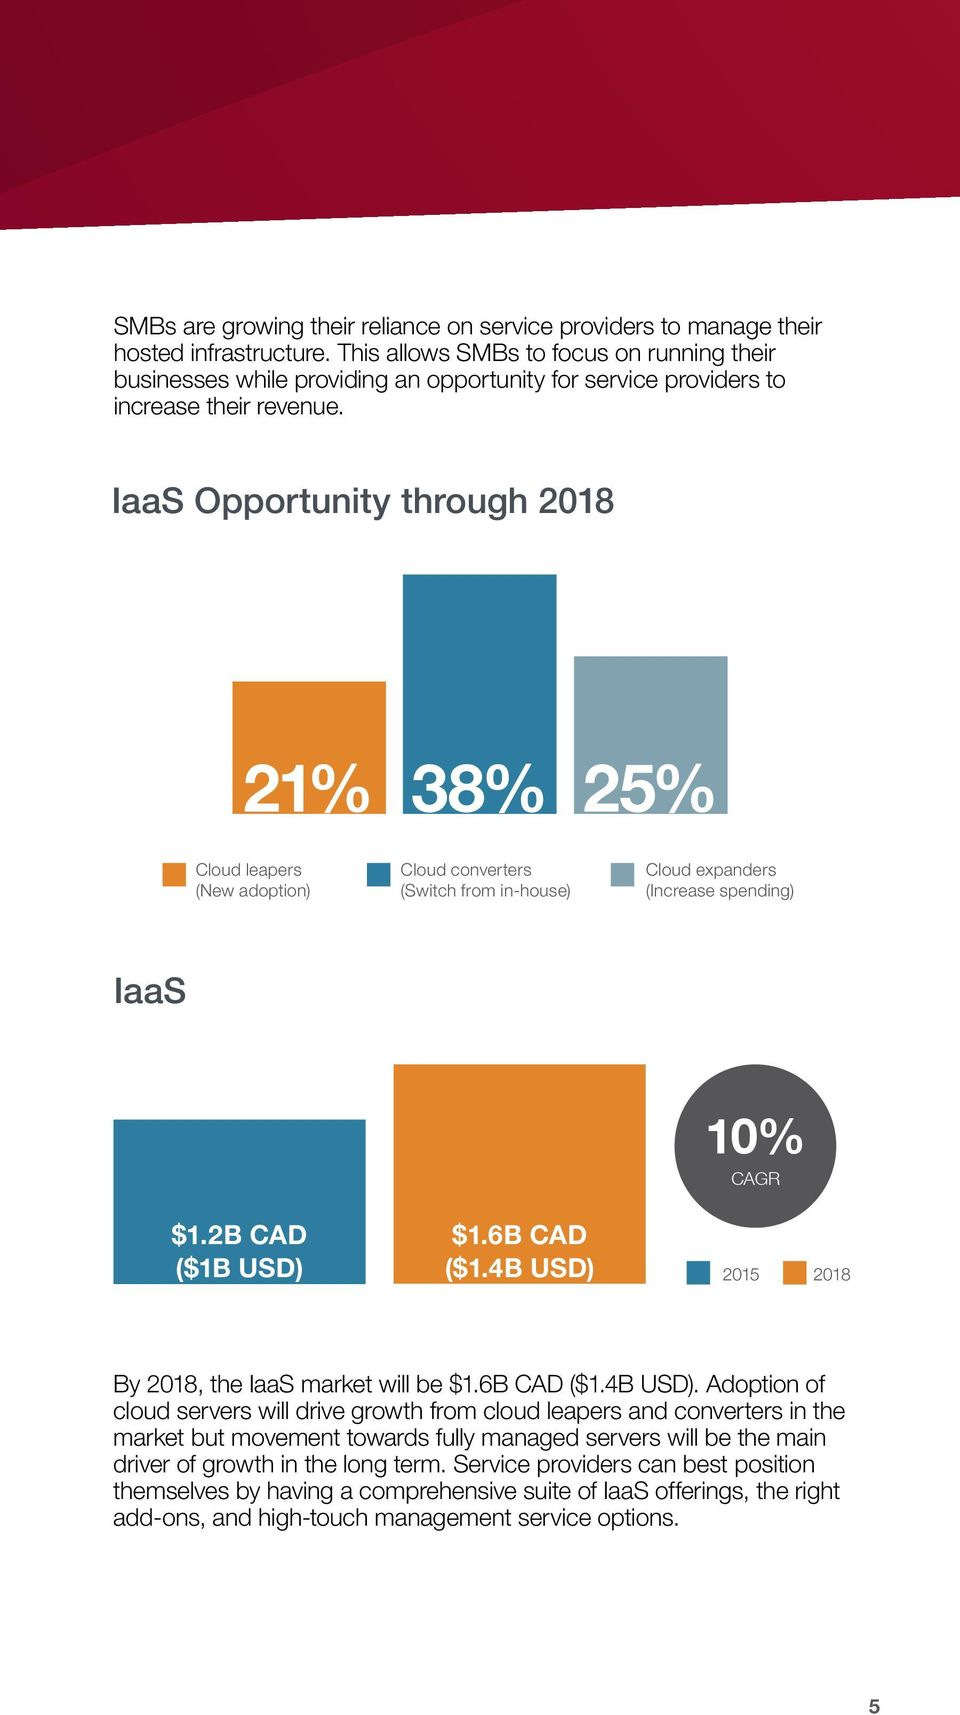 IaaS Opportunity through 2018 21% 38% 25% Cloud leapers (New adoption) Cloud converters (Switch from in-house) Cloud expanders (Increase spending) IaaS 10% CAGR $1.2B ($1B USD) $1.6B ($1.